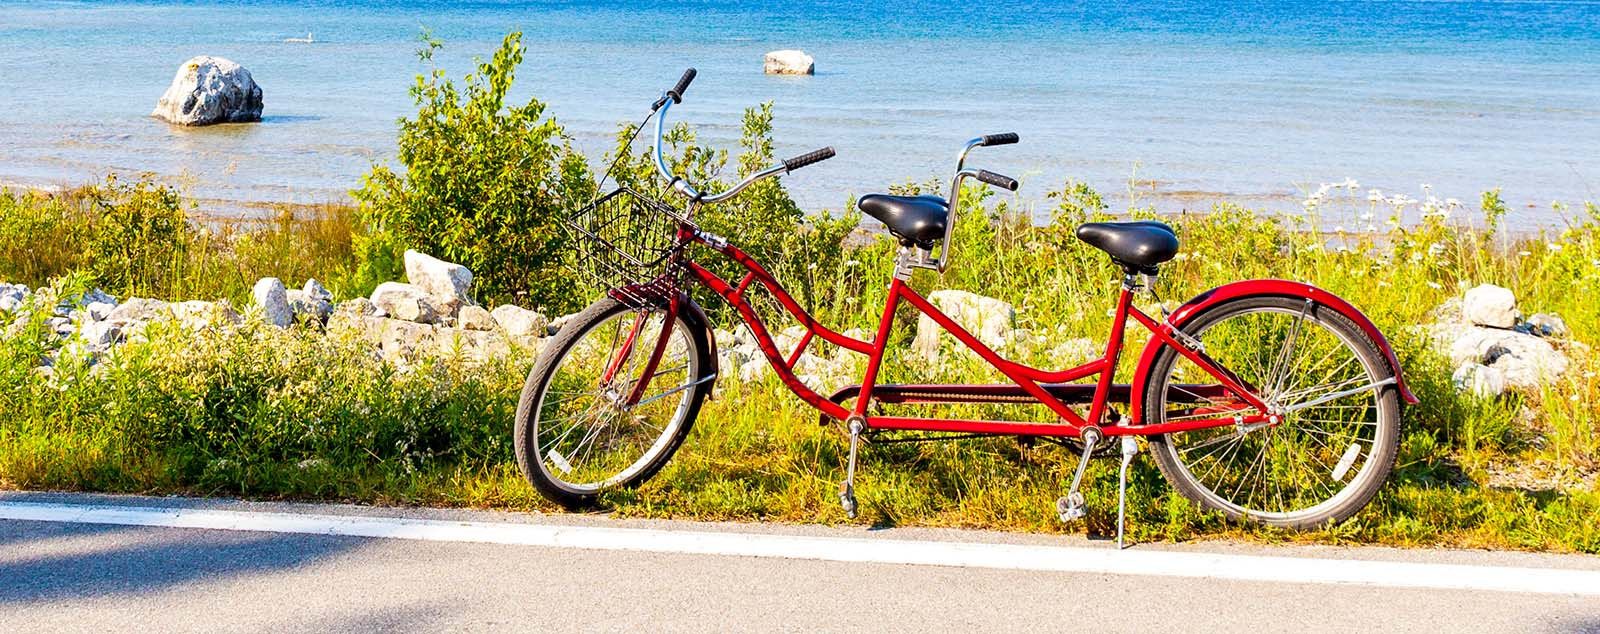 A red tandem bike parked on a beach road